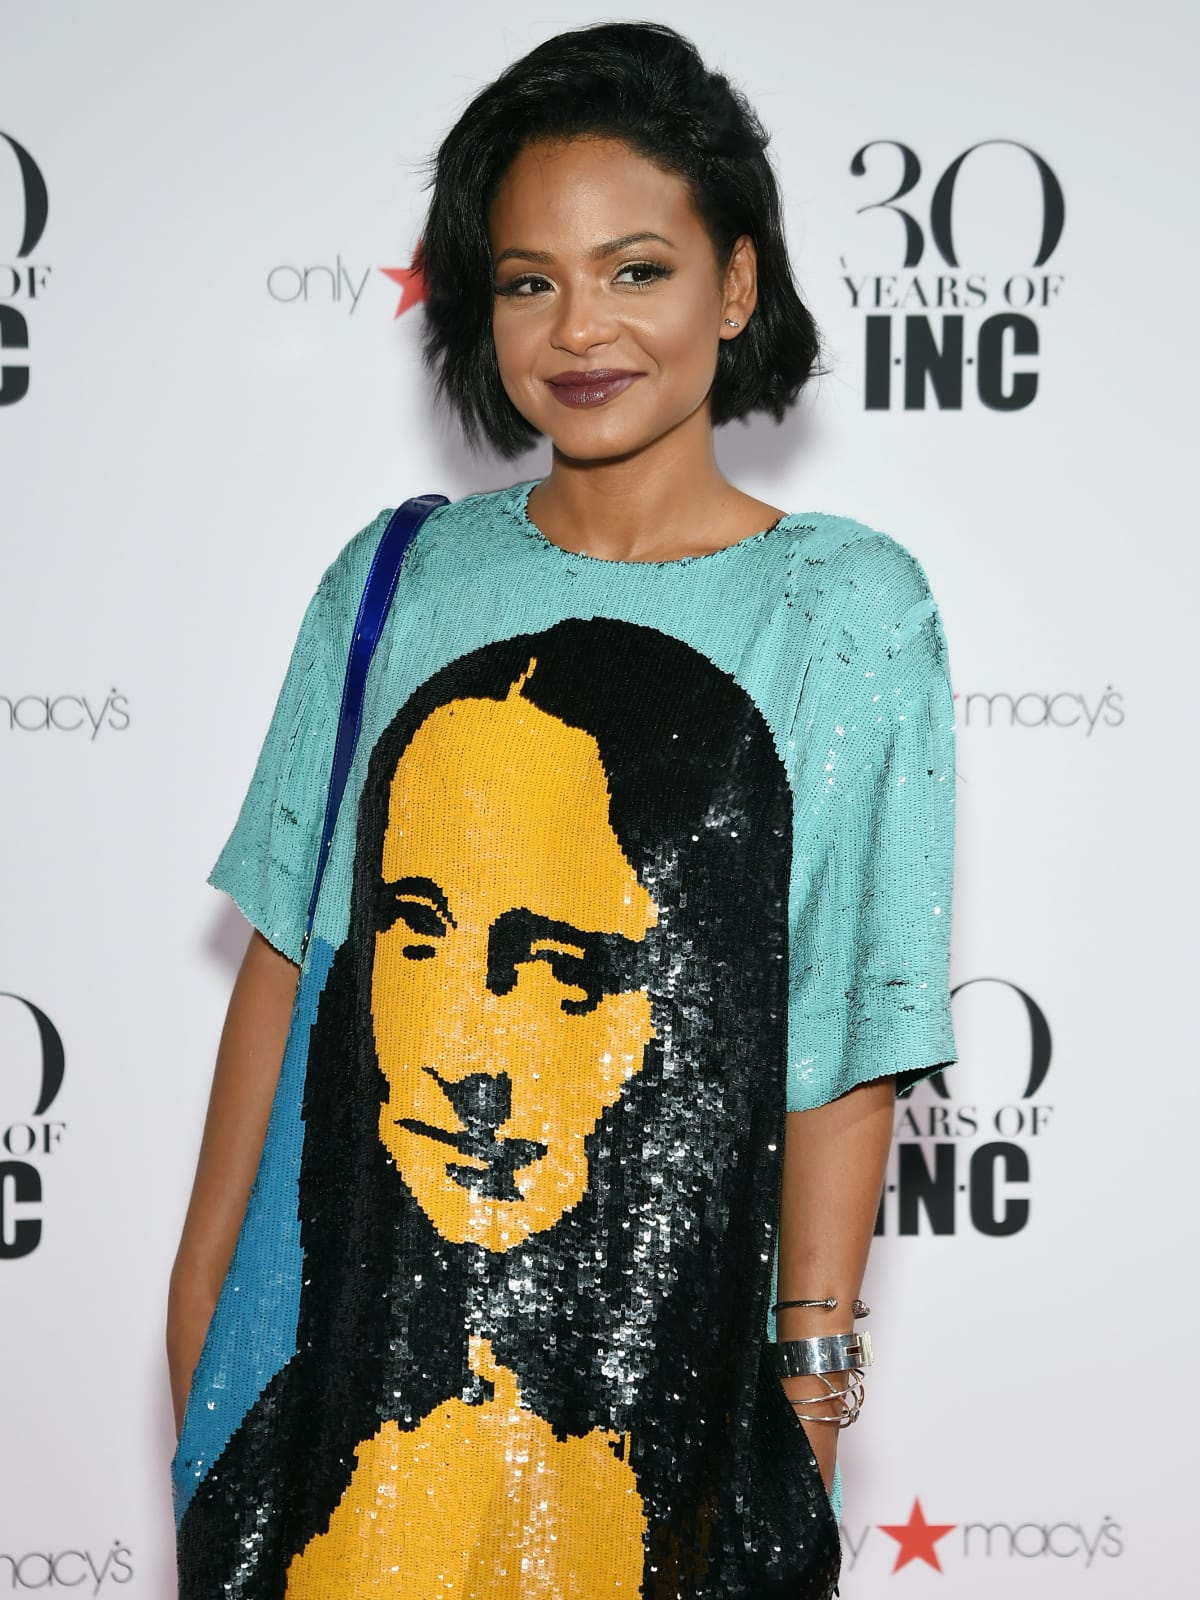 Christina Milian at Macy'c INC party at New York Fashion Week